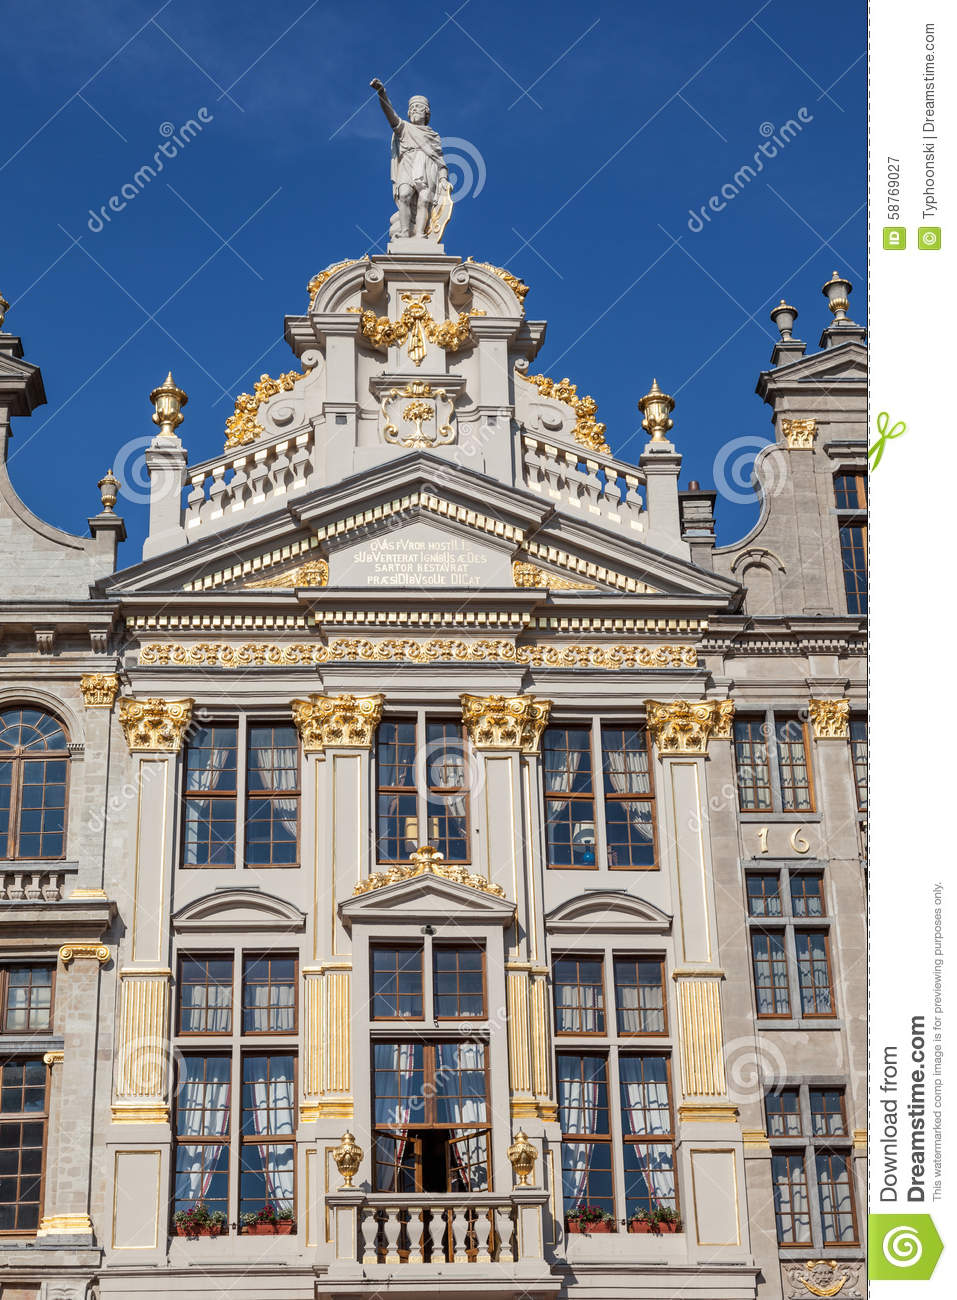 Architecture belge traditionnelle bruxelles photo stock image 58769027 - Architecture maison en belgique ...